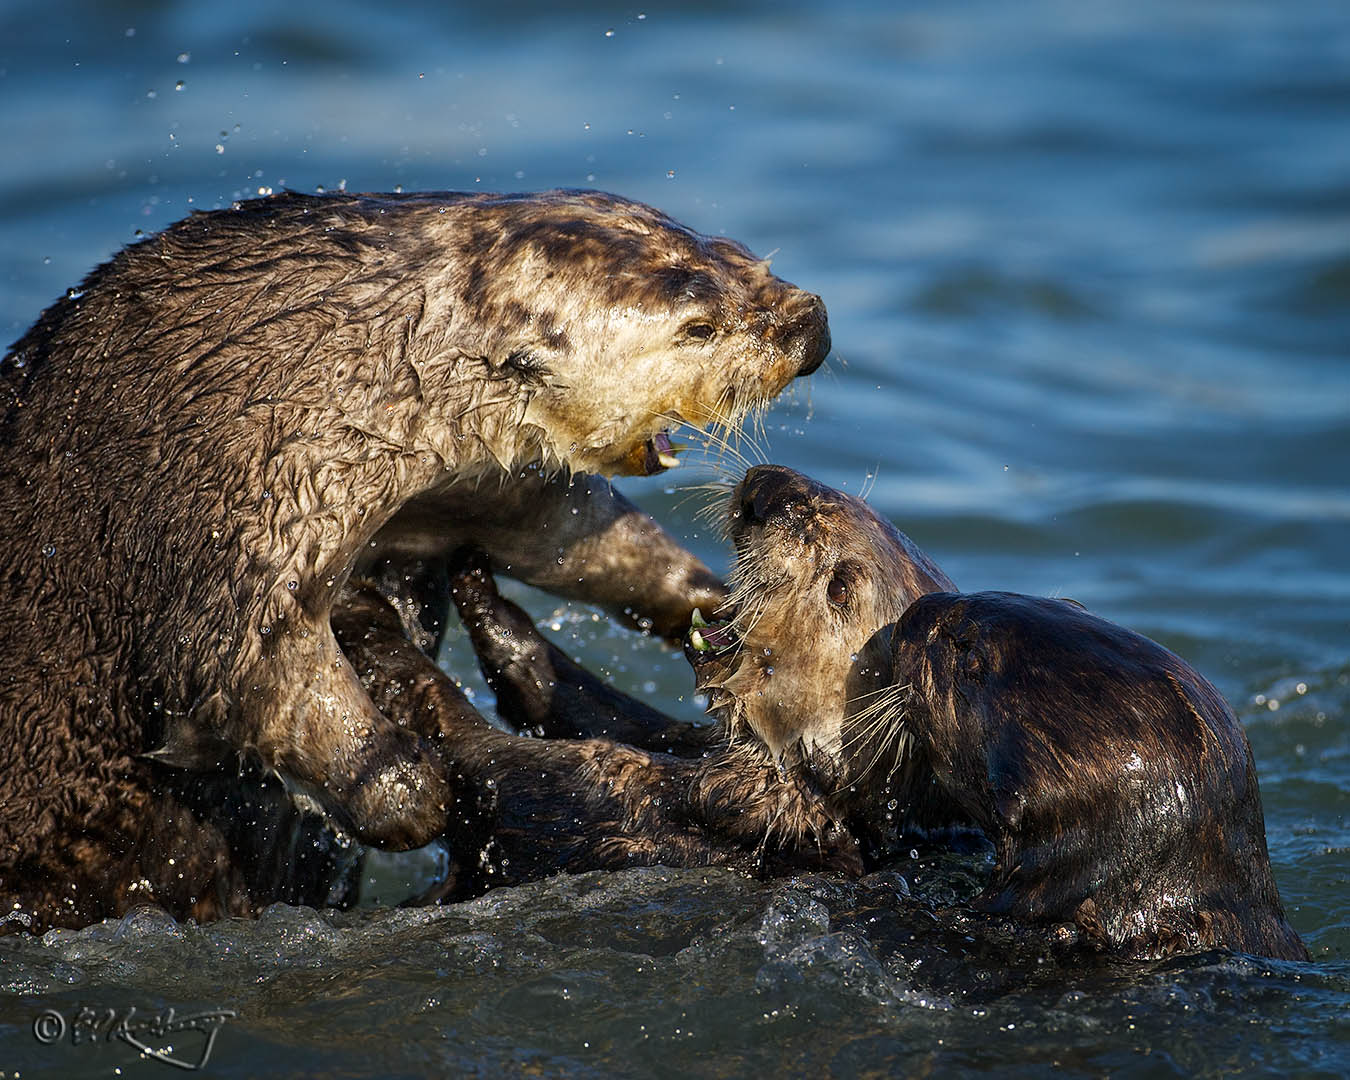 Sea_Otters_at_play-c23